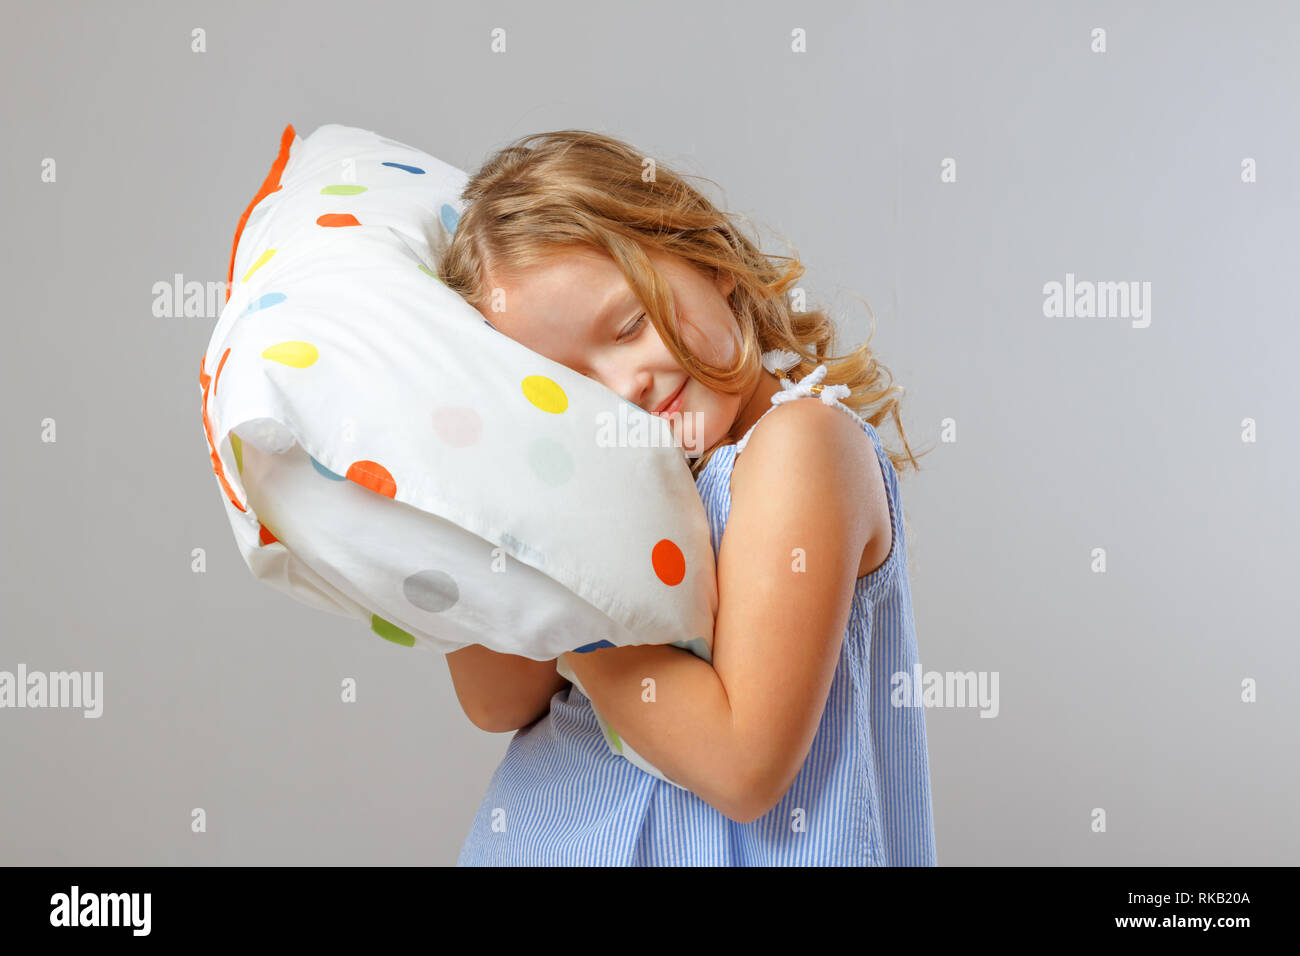 https www alamy com people and healthy sleep concept a little girl kid hugs a soft pillow closes her eyes and poses against a studio background gray background image235656298 html